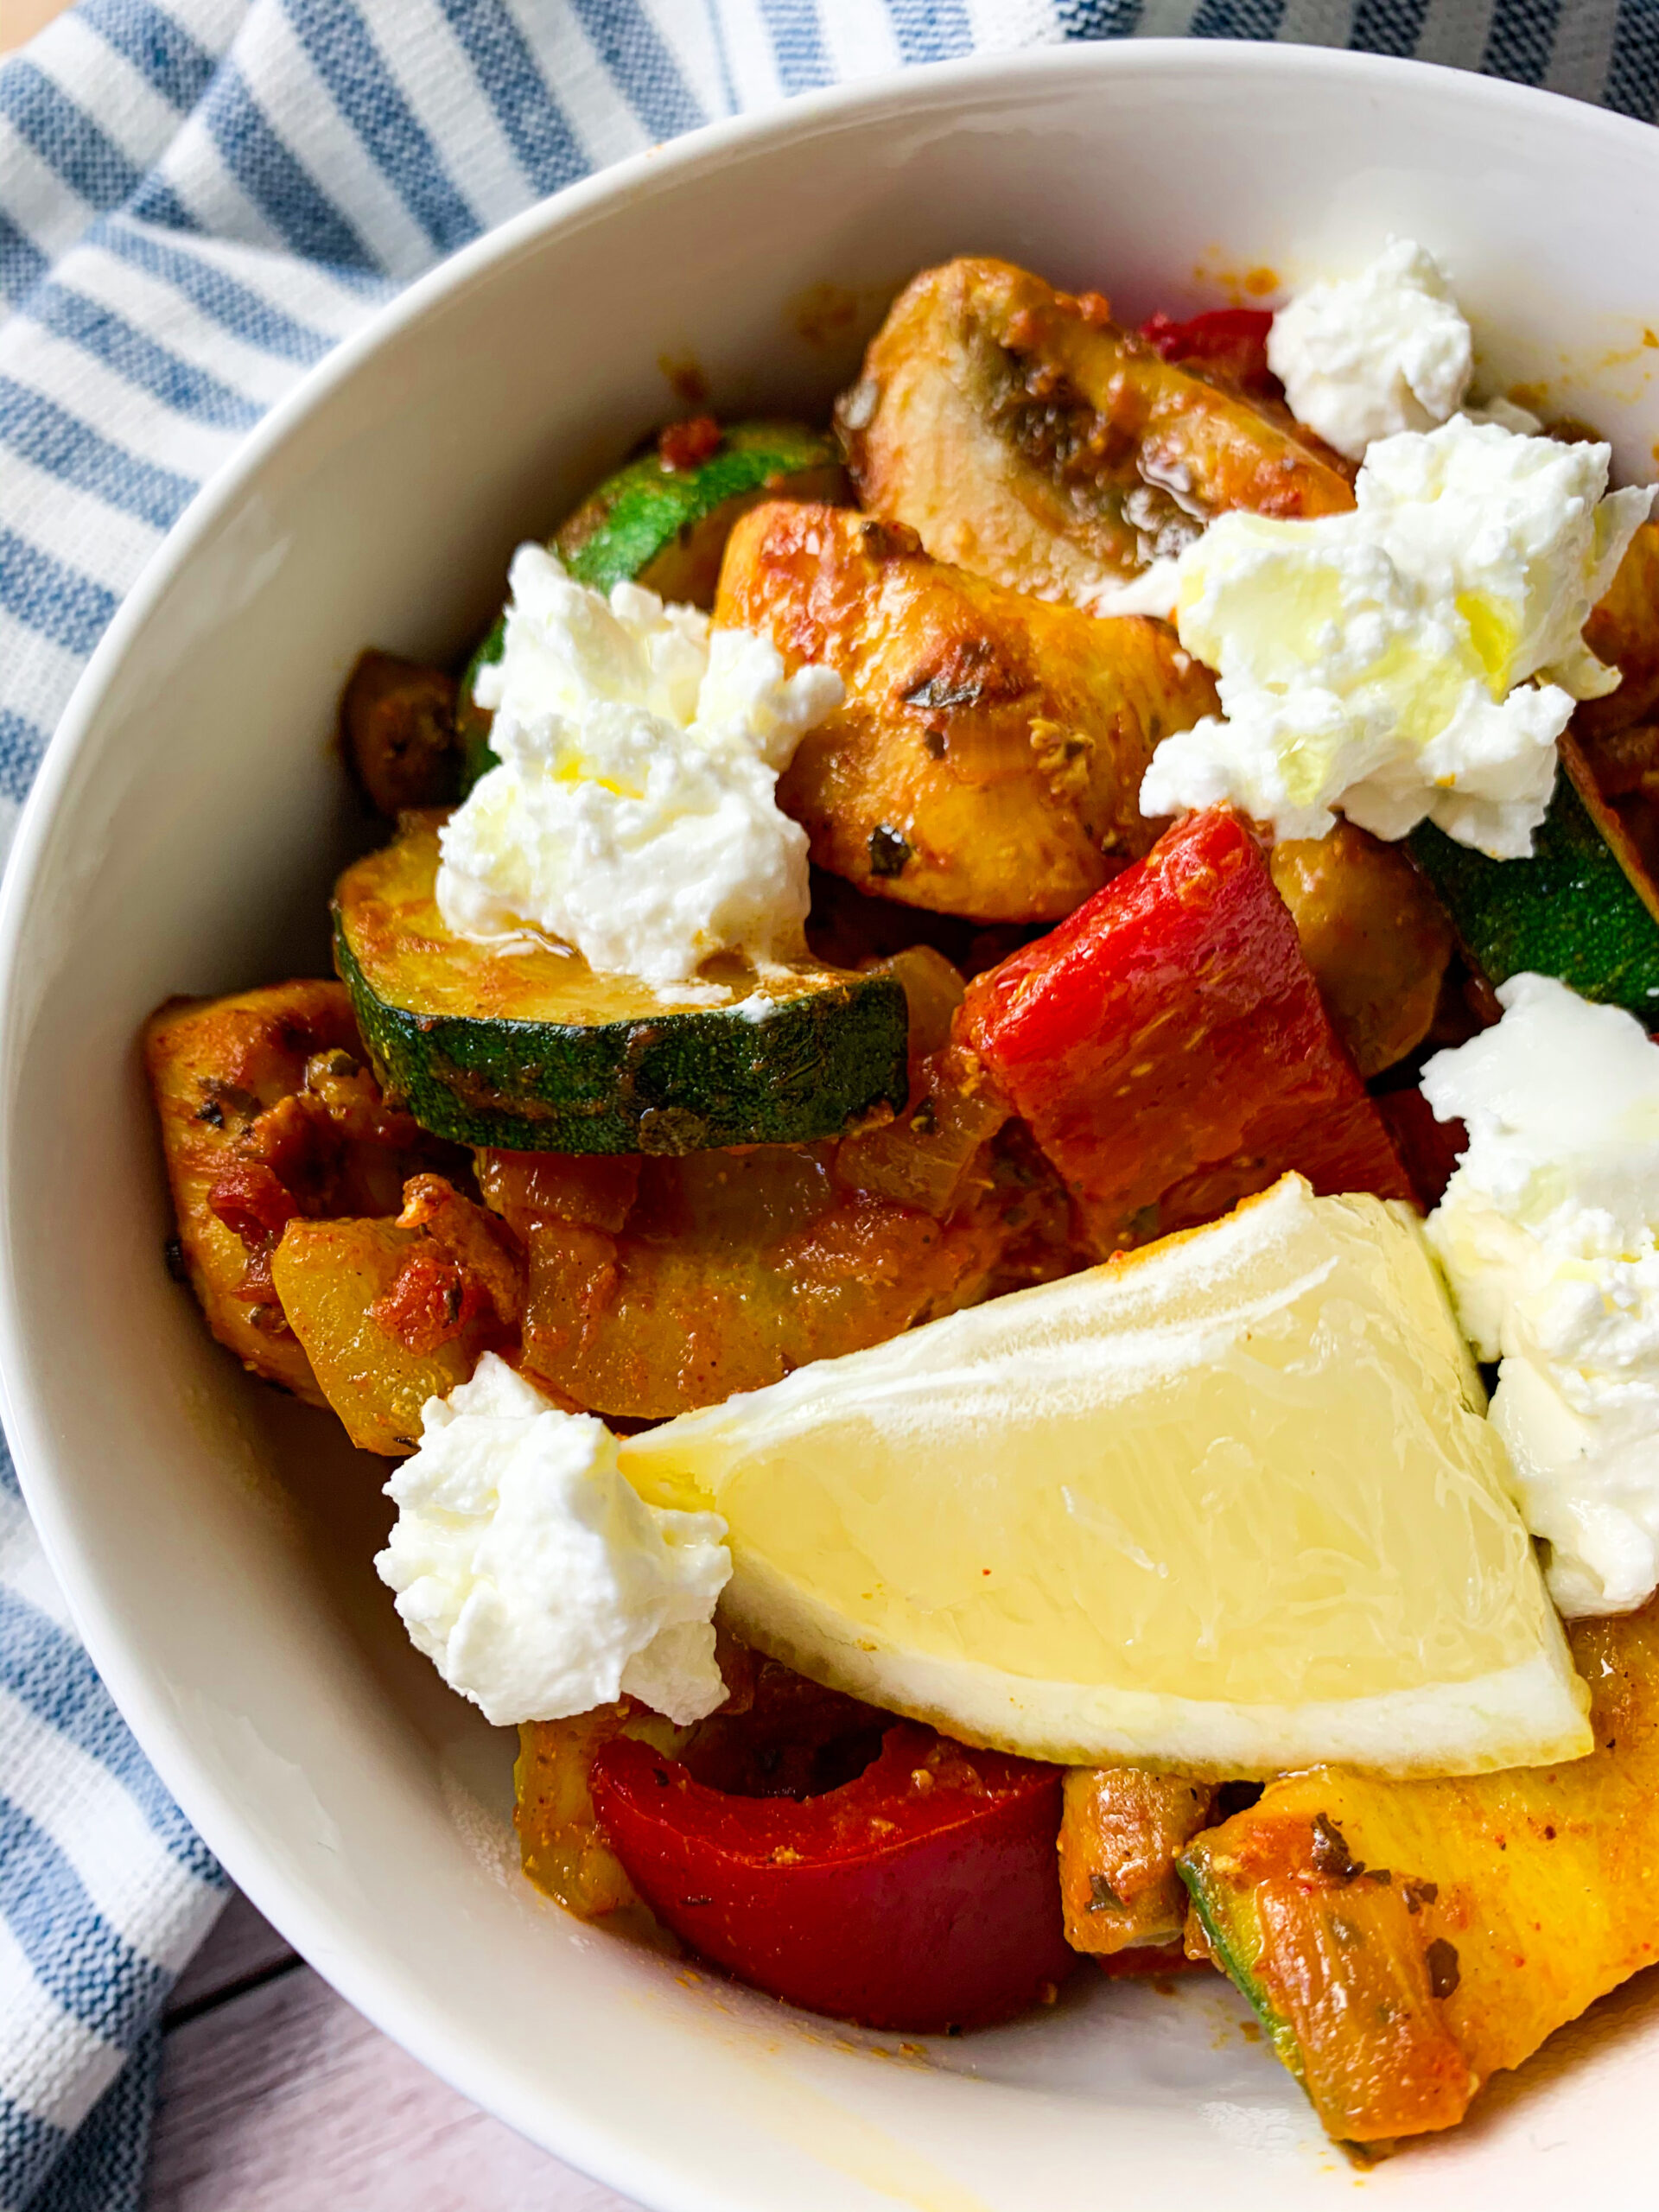 Picture of a bowl of chicken with vegetables and feta cheese on top